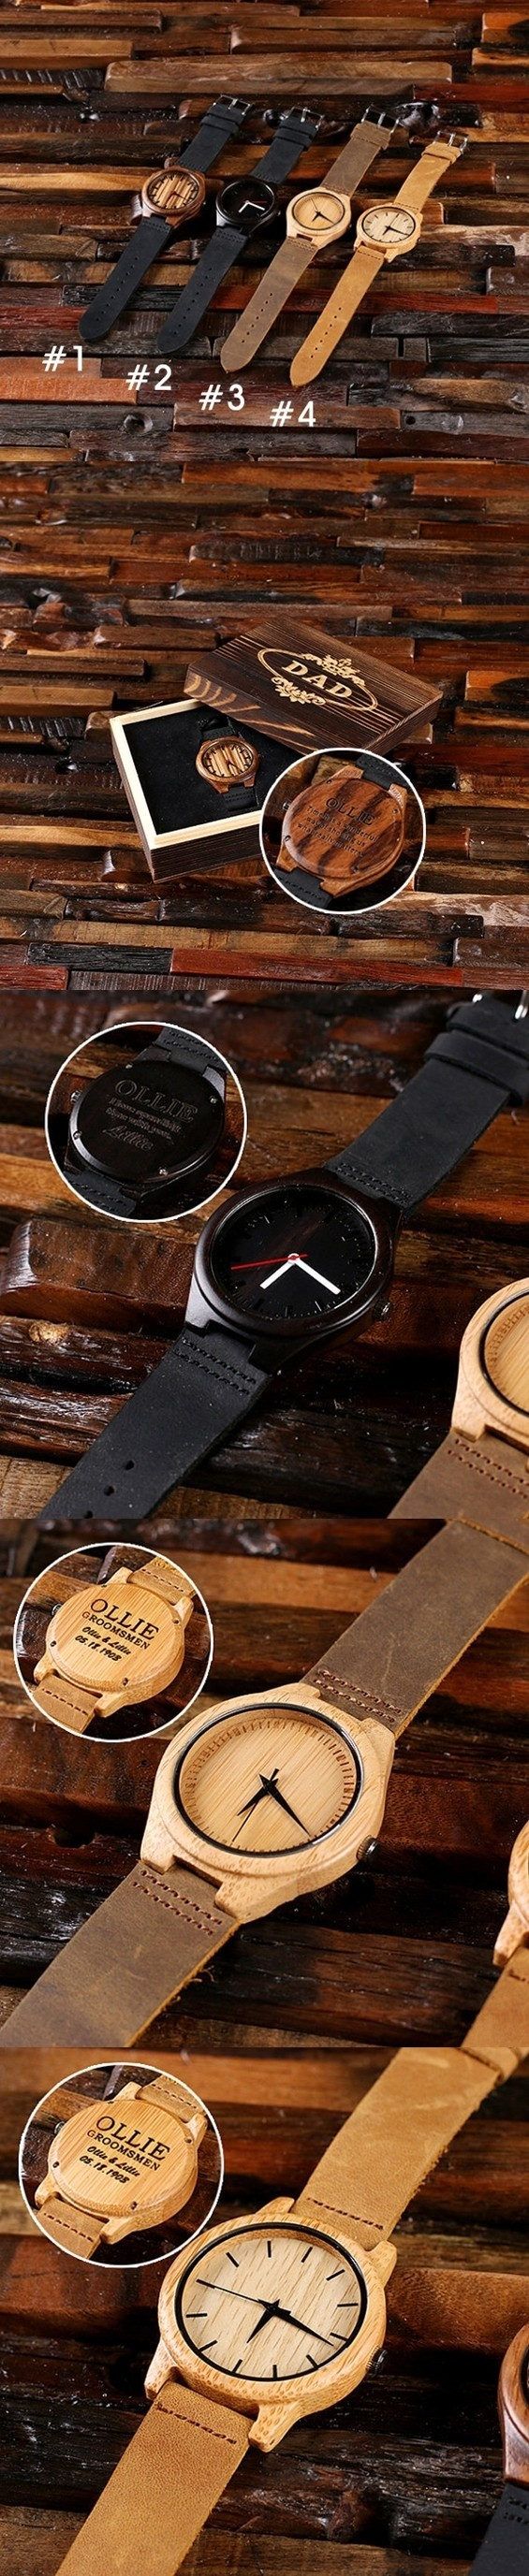 Personalized Engraved Bamboo-Wood Watch in Wood Gift-Box (4 Styles)